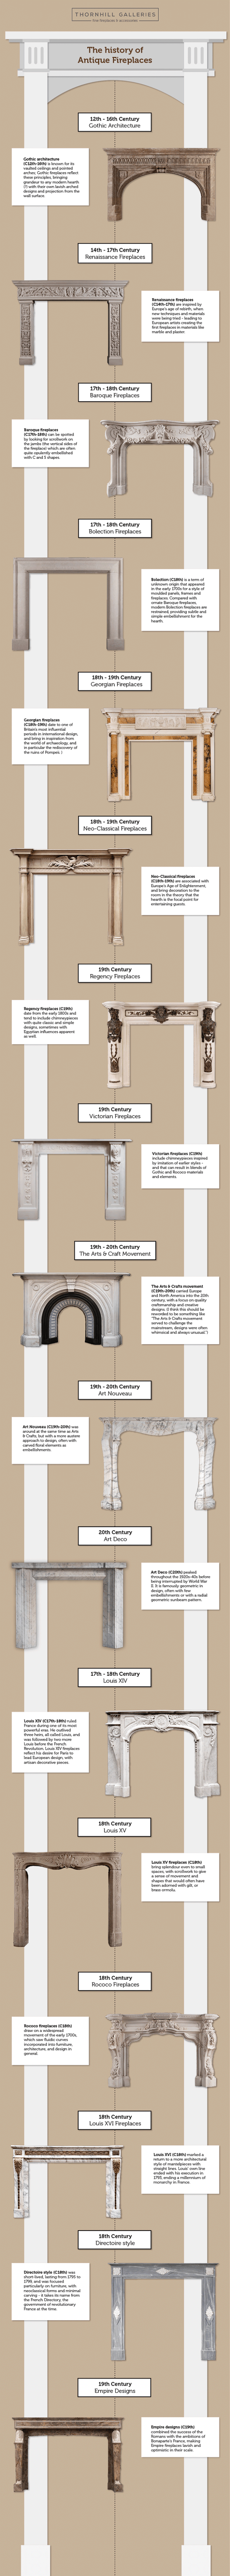 Fireplace history infographic